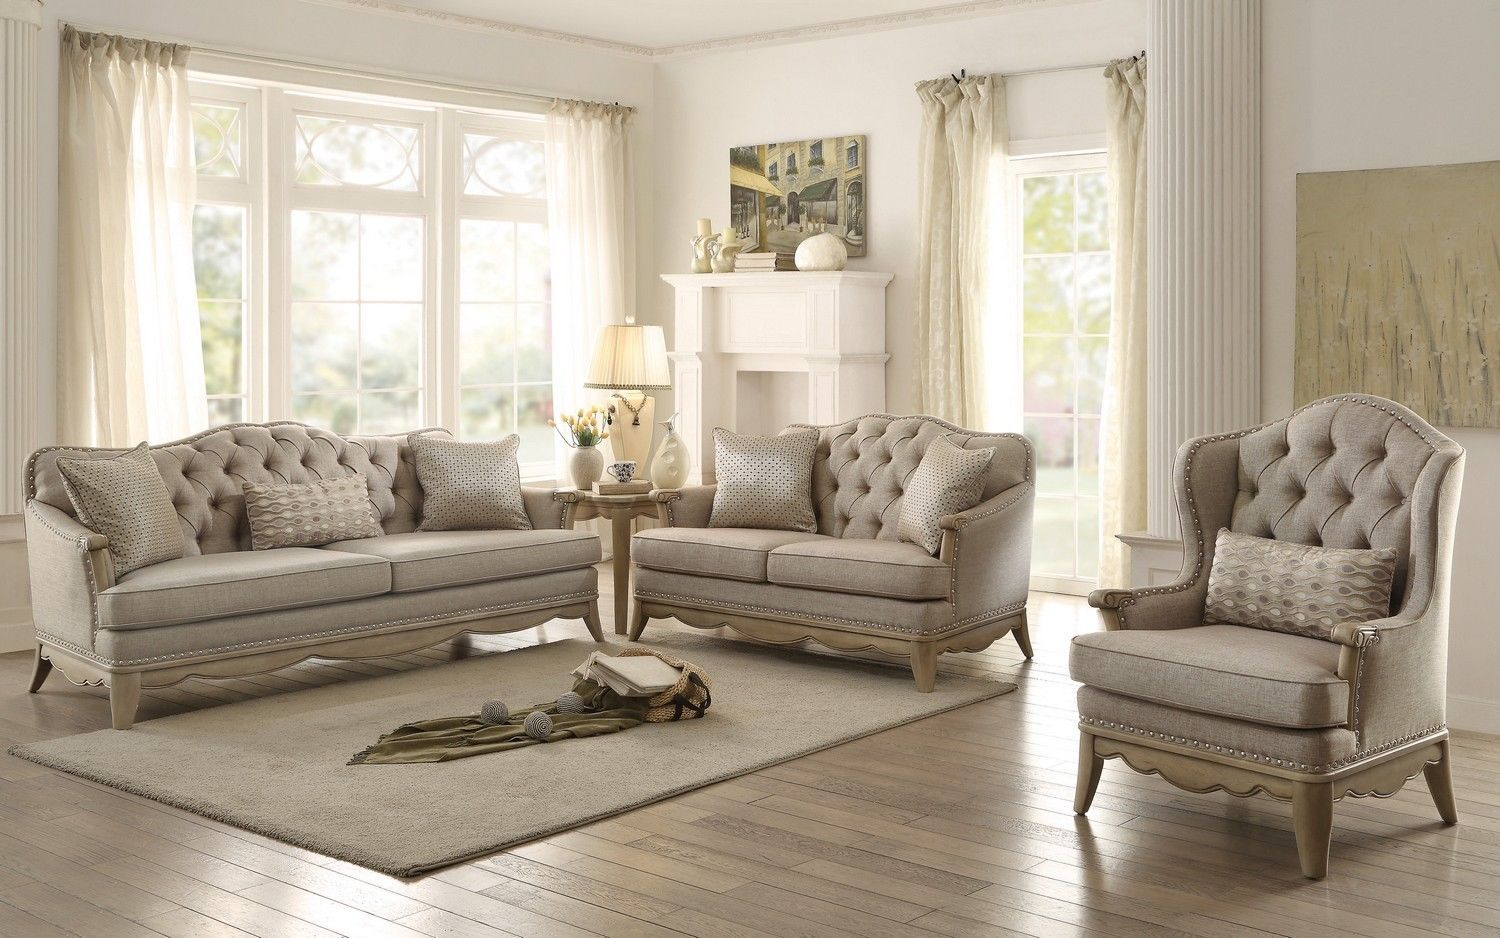 Formal traditional ashden sofa set 3pc sofa loveseat chair for Traditional living room sets